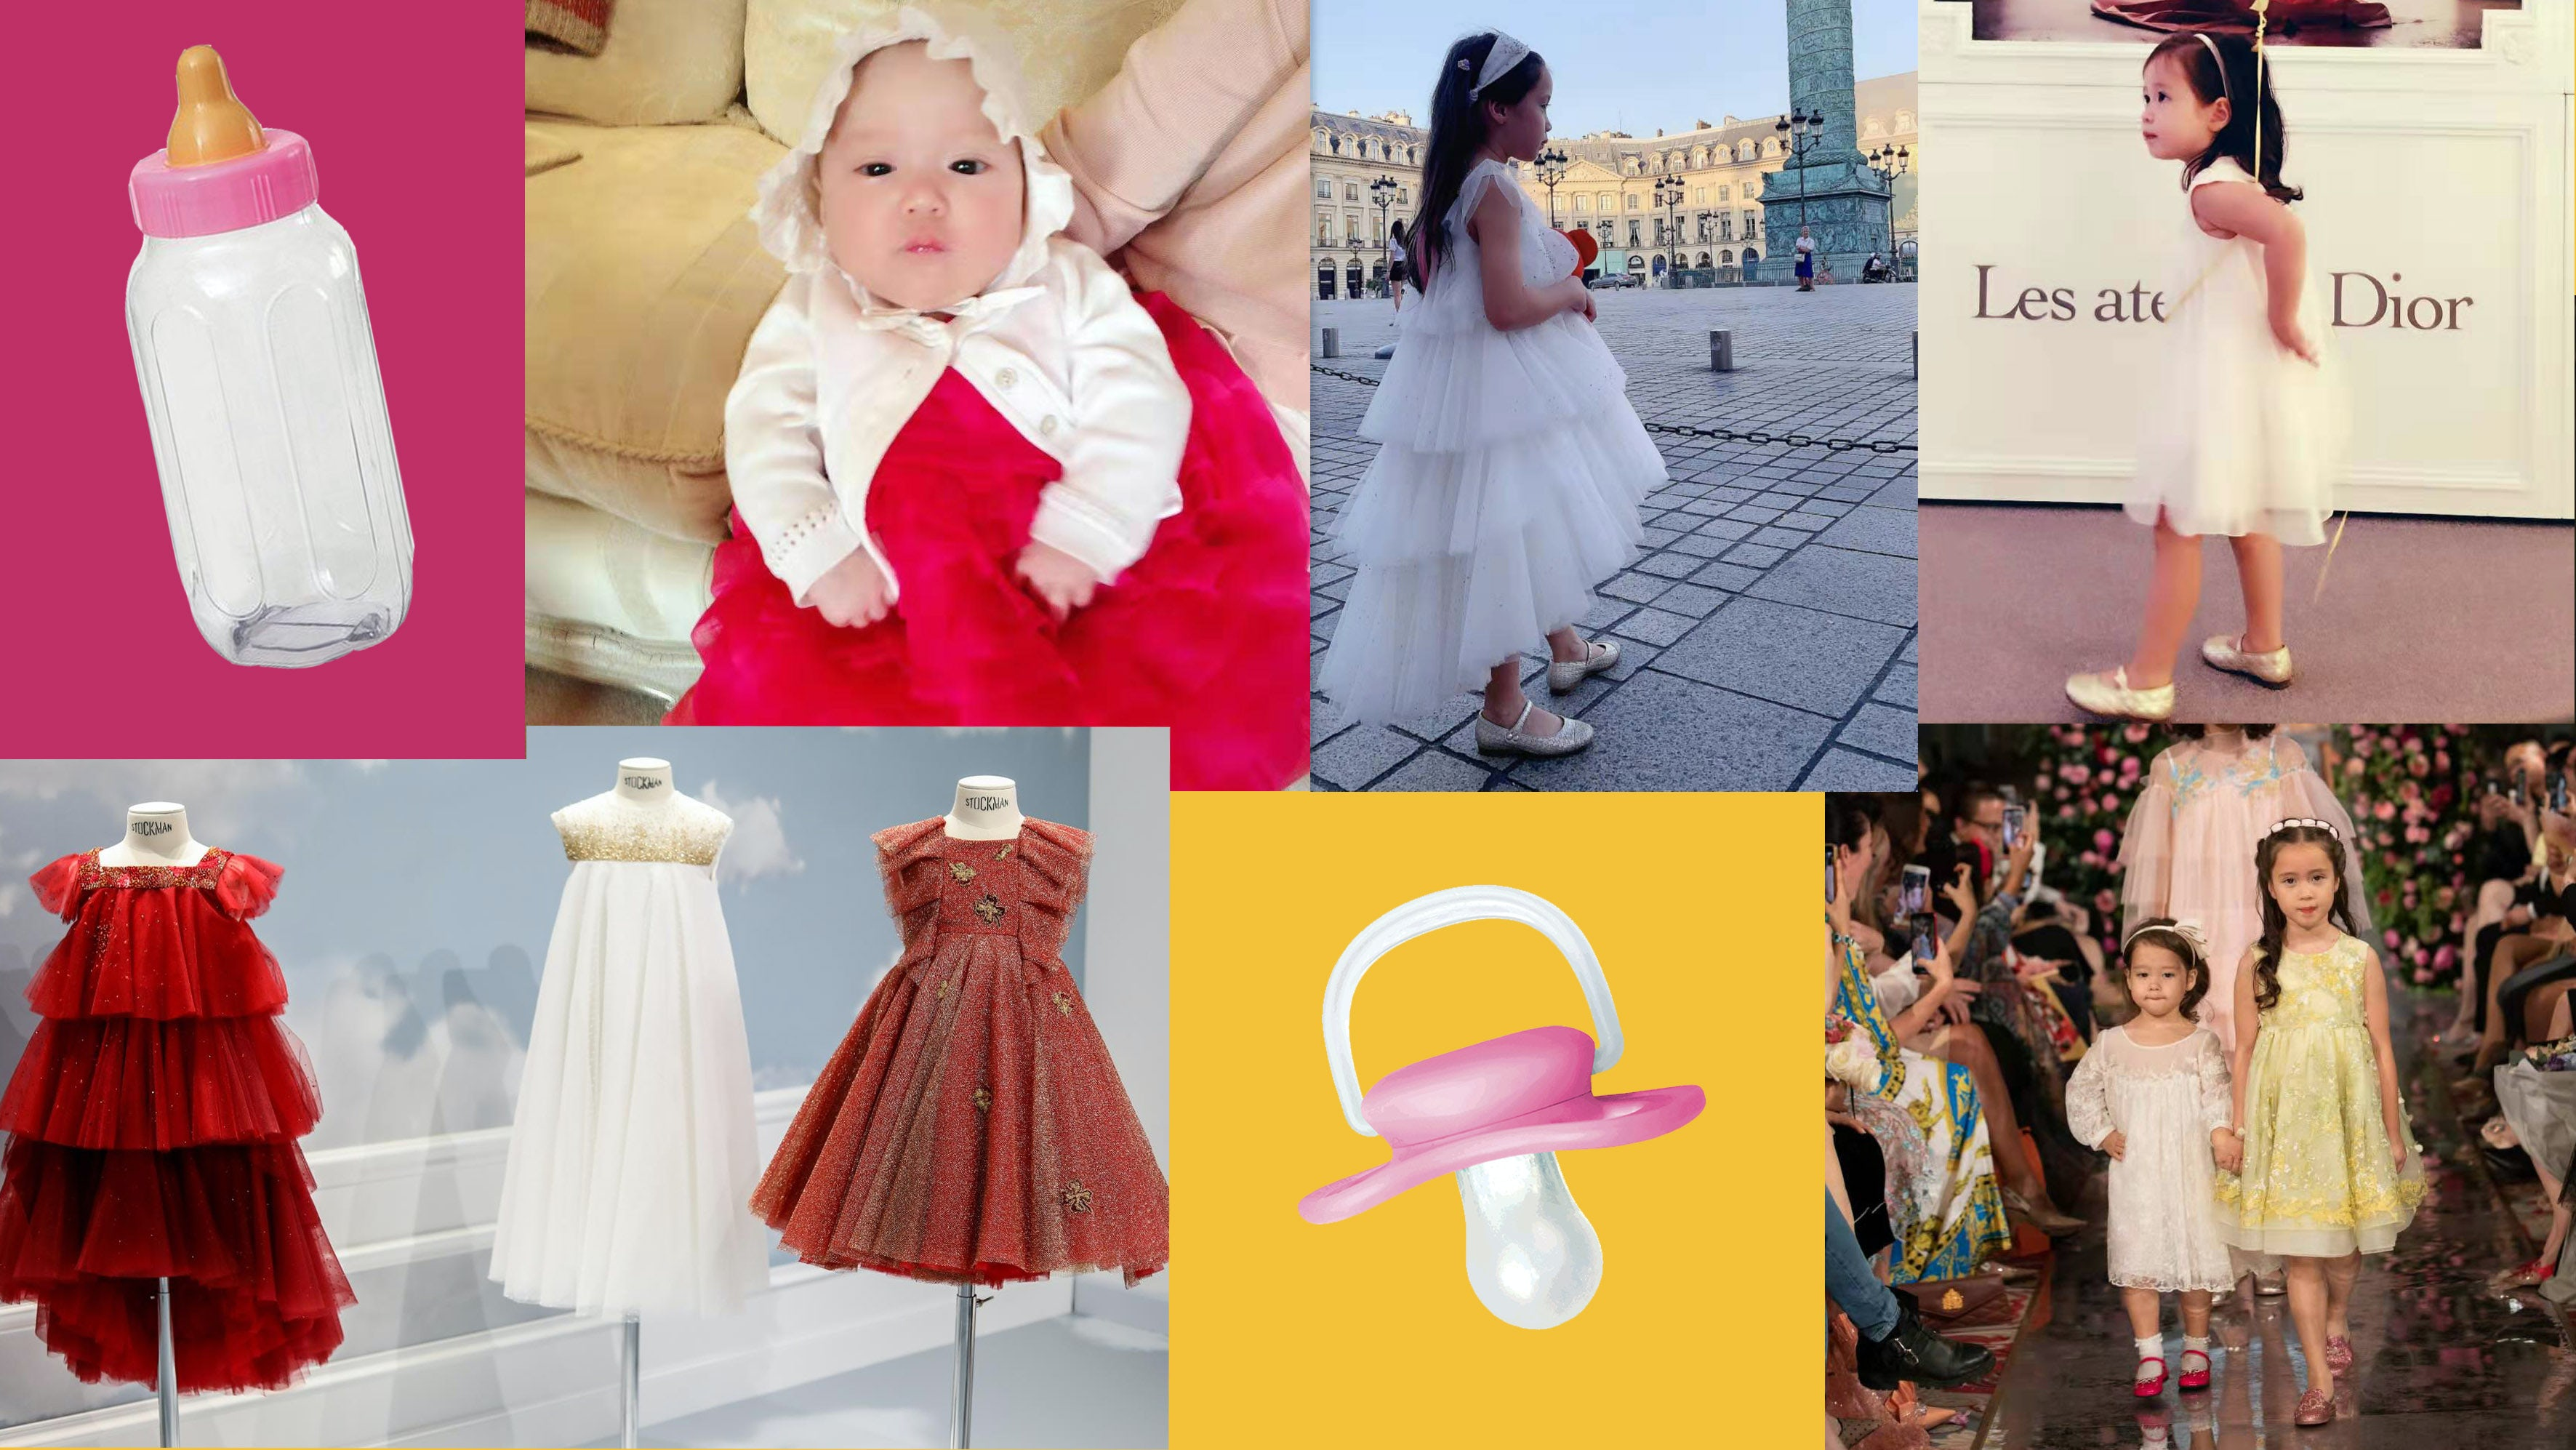 Yes, People Are Buying Couture for Babies. Here's Why.